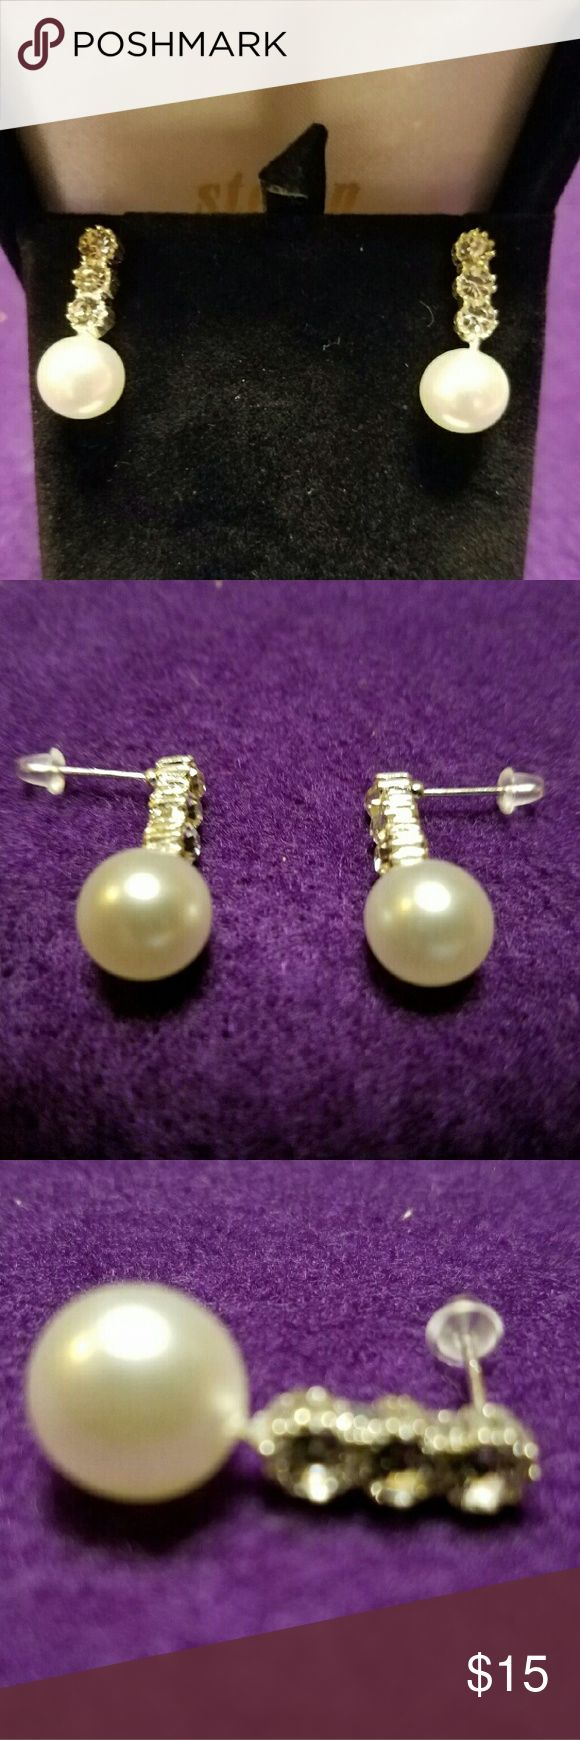 1 pair costume jewlry pearl look stone NWOT Silver earrings with 3 clear stones and pearl looking stone on bottom NWOT Jewelry Earrings